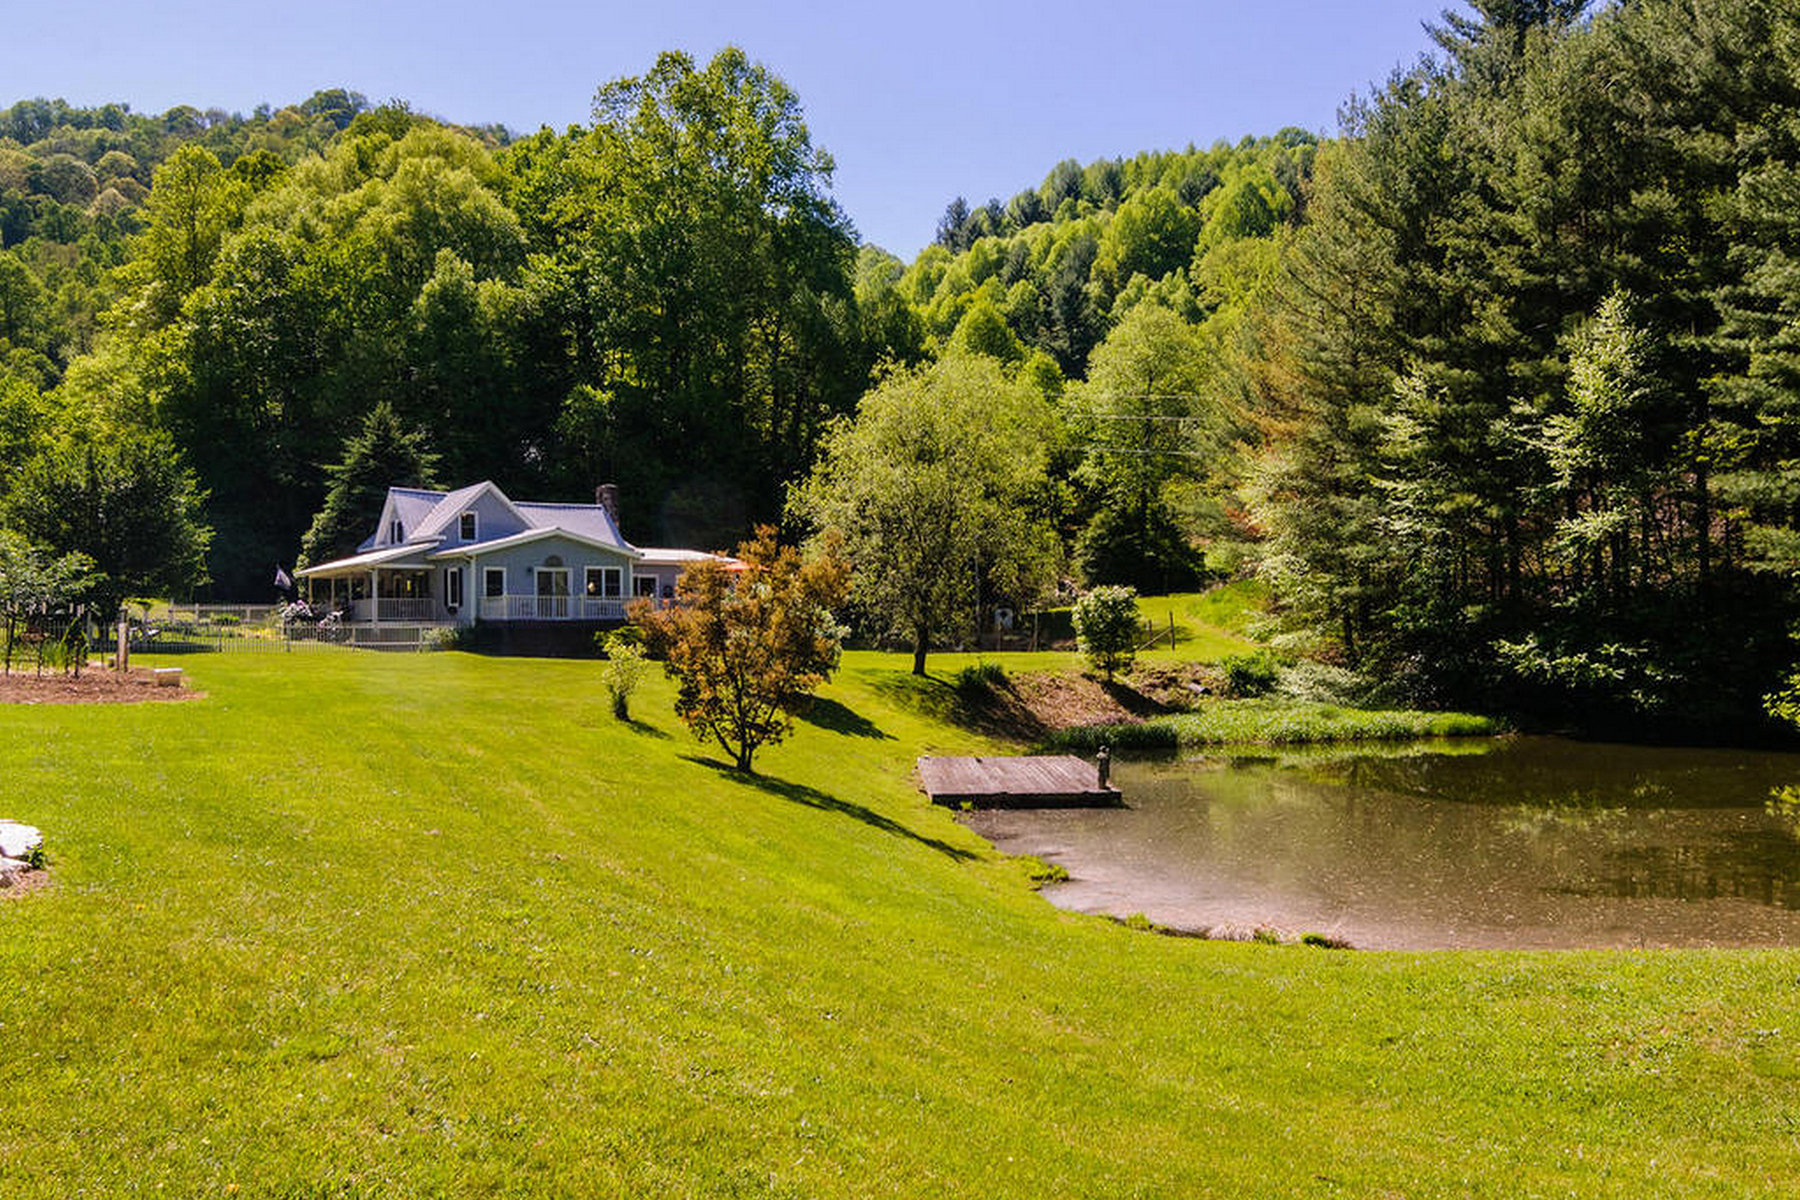 Land for Sale at LAUGHING ROOSTER FARM 500 Mountain View Rd Hot Springs, North Carolina, 28743 United StatesIn/Around: Asheville